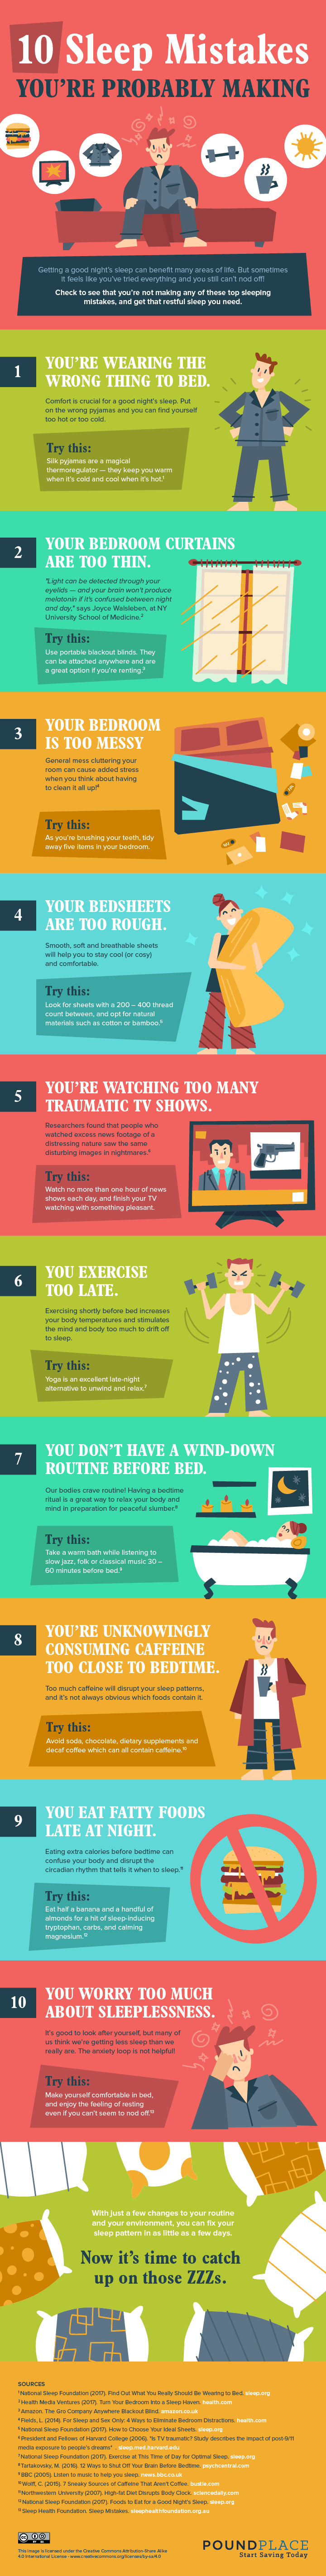 Mistakes You're Probably Making While Sleeping - Infographic